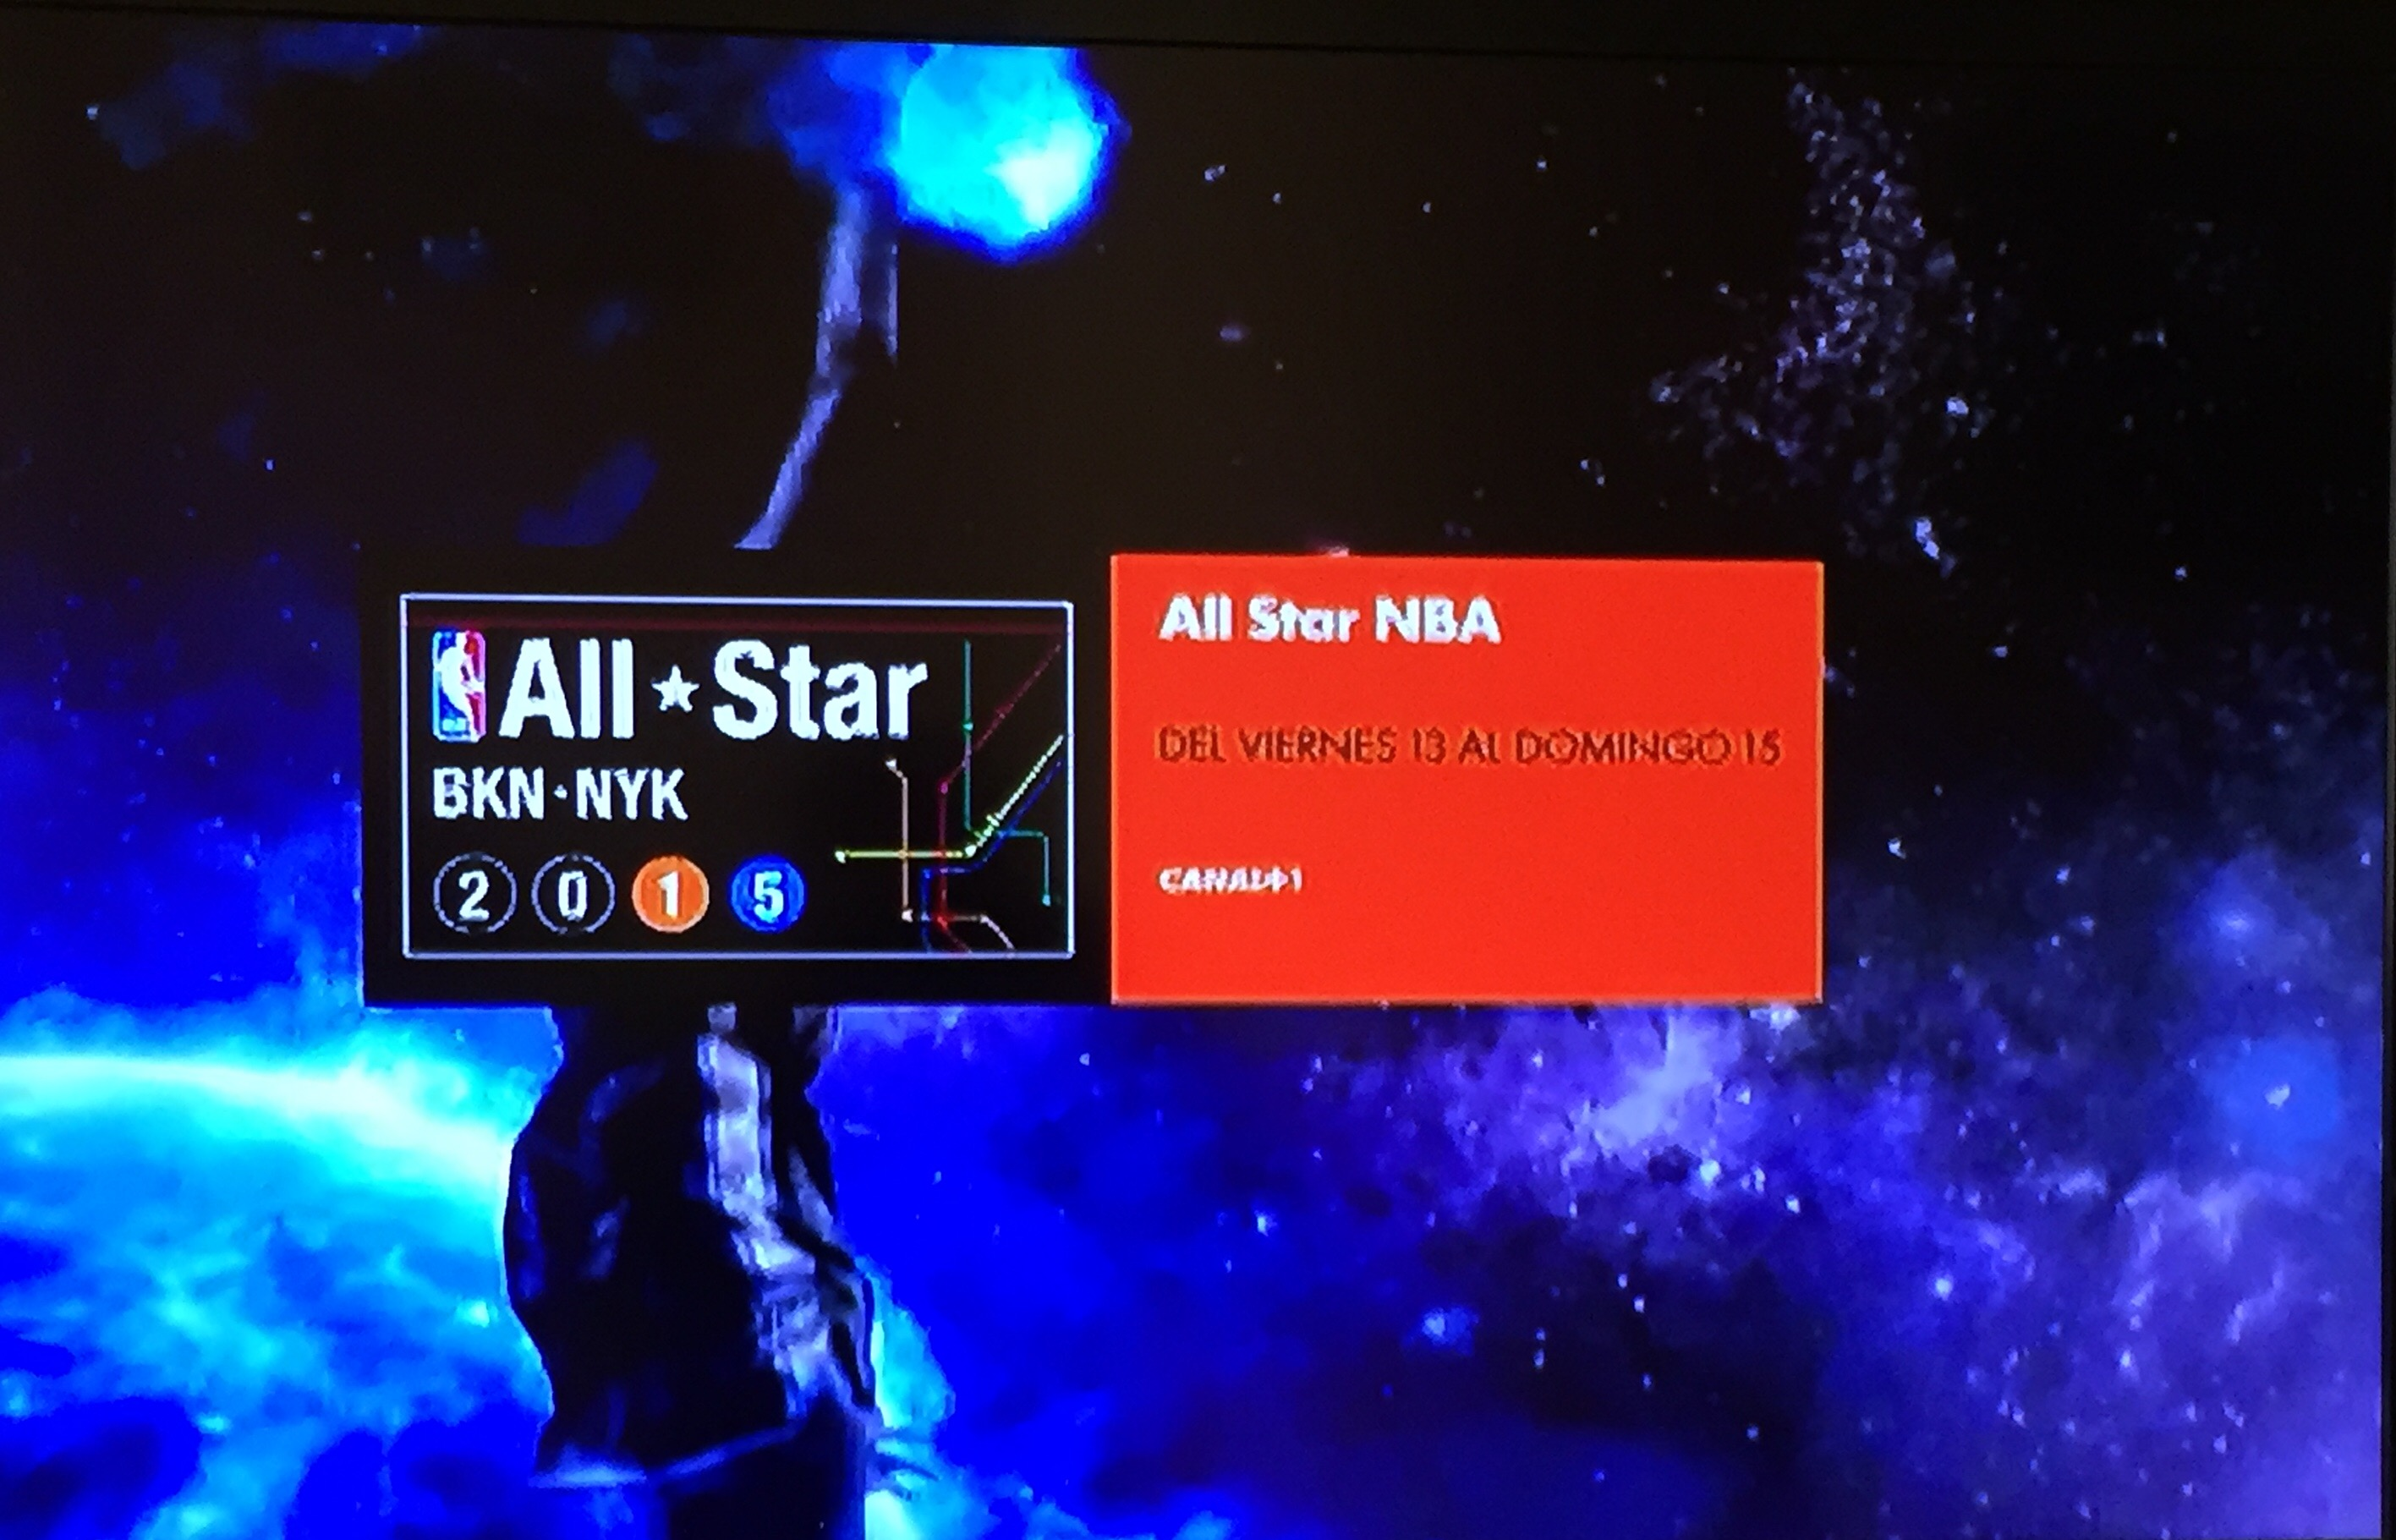 ALL STARS CANAL+1